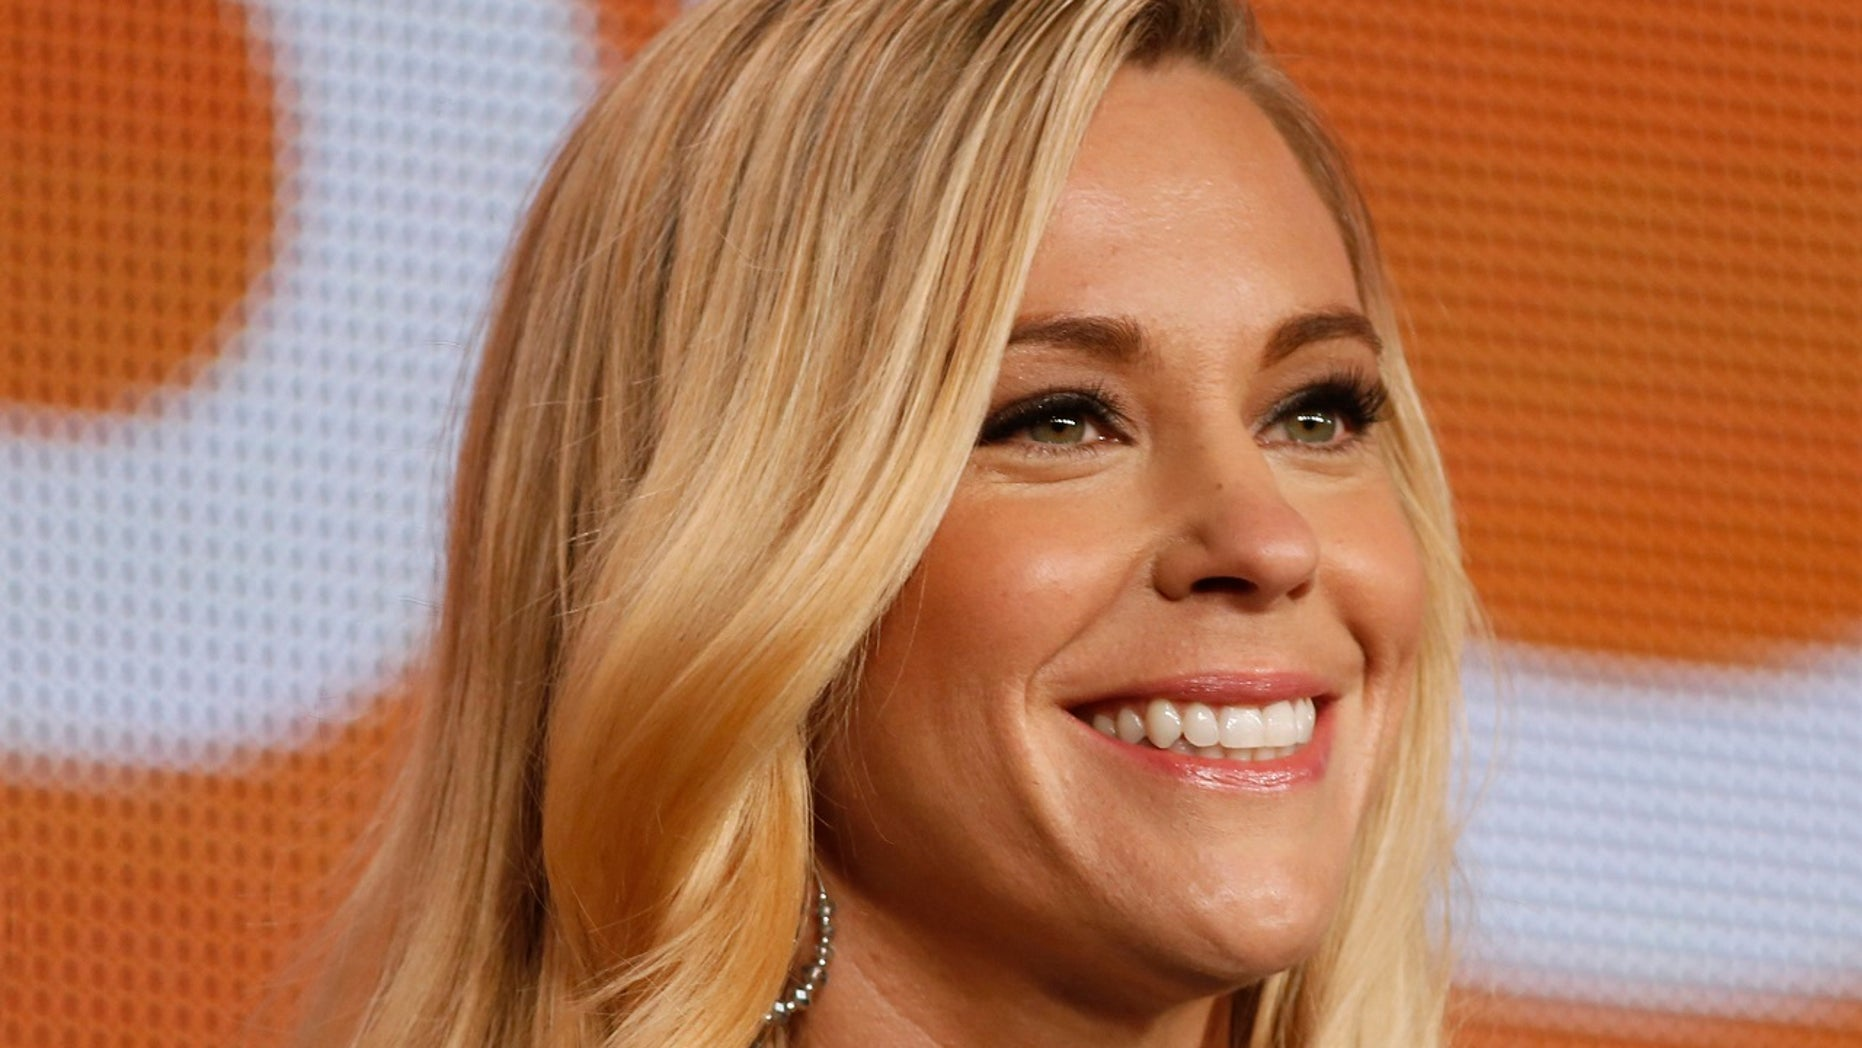 Kate Gosselin is going to return to TLC with reality dating show 'Kate Plus Date,' People reports.